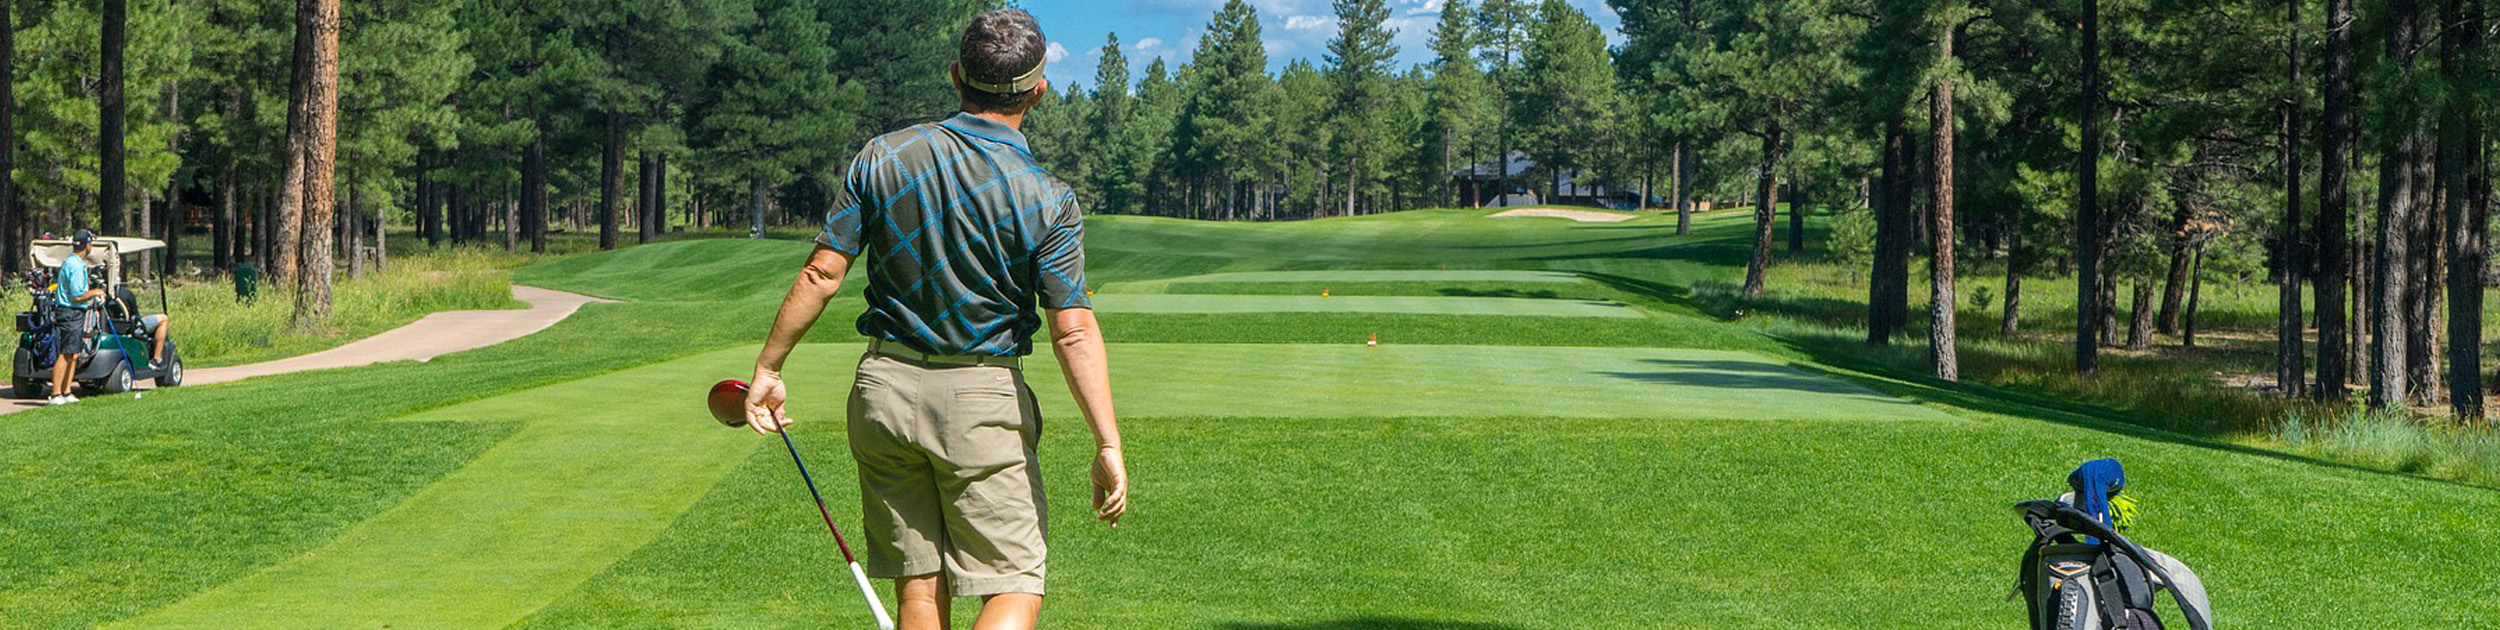 man gazing down golf course after making a swing